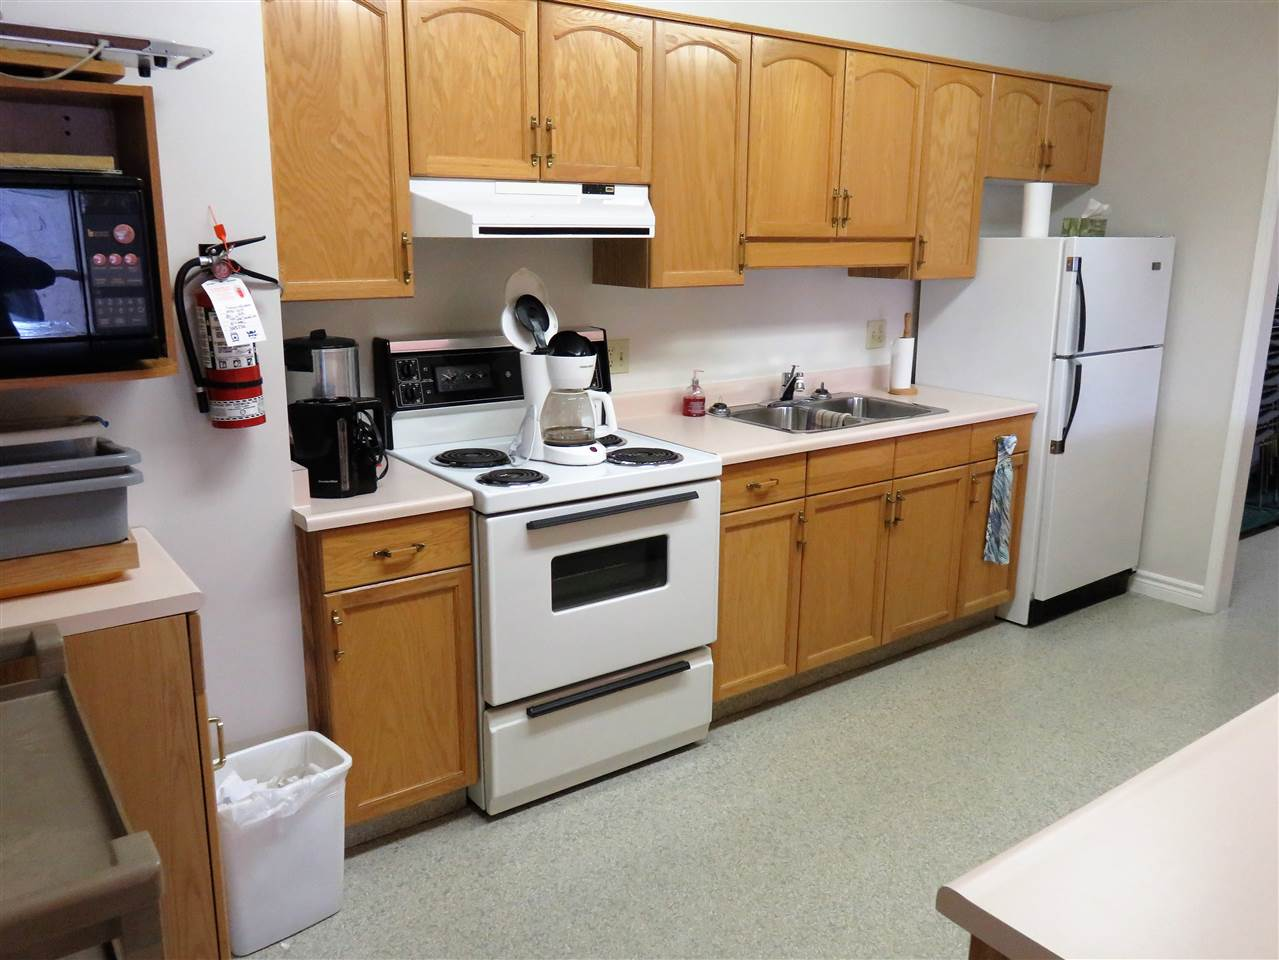 Here is the full kitchen for you to use! For a small fee & damage deposit! :)